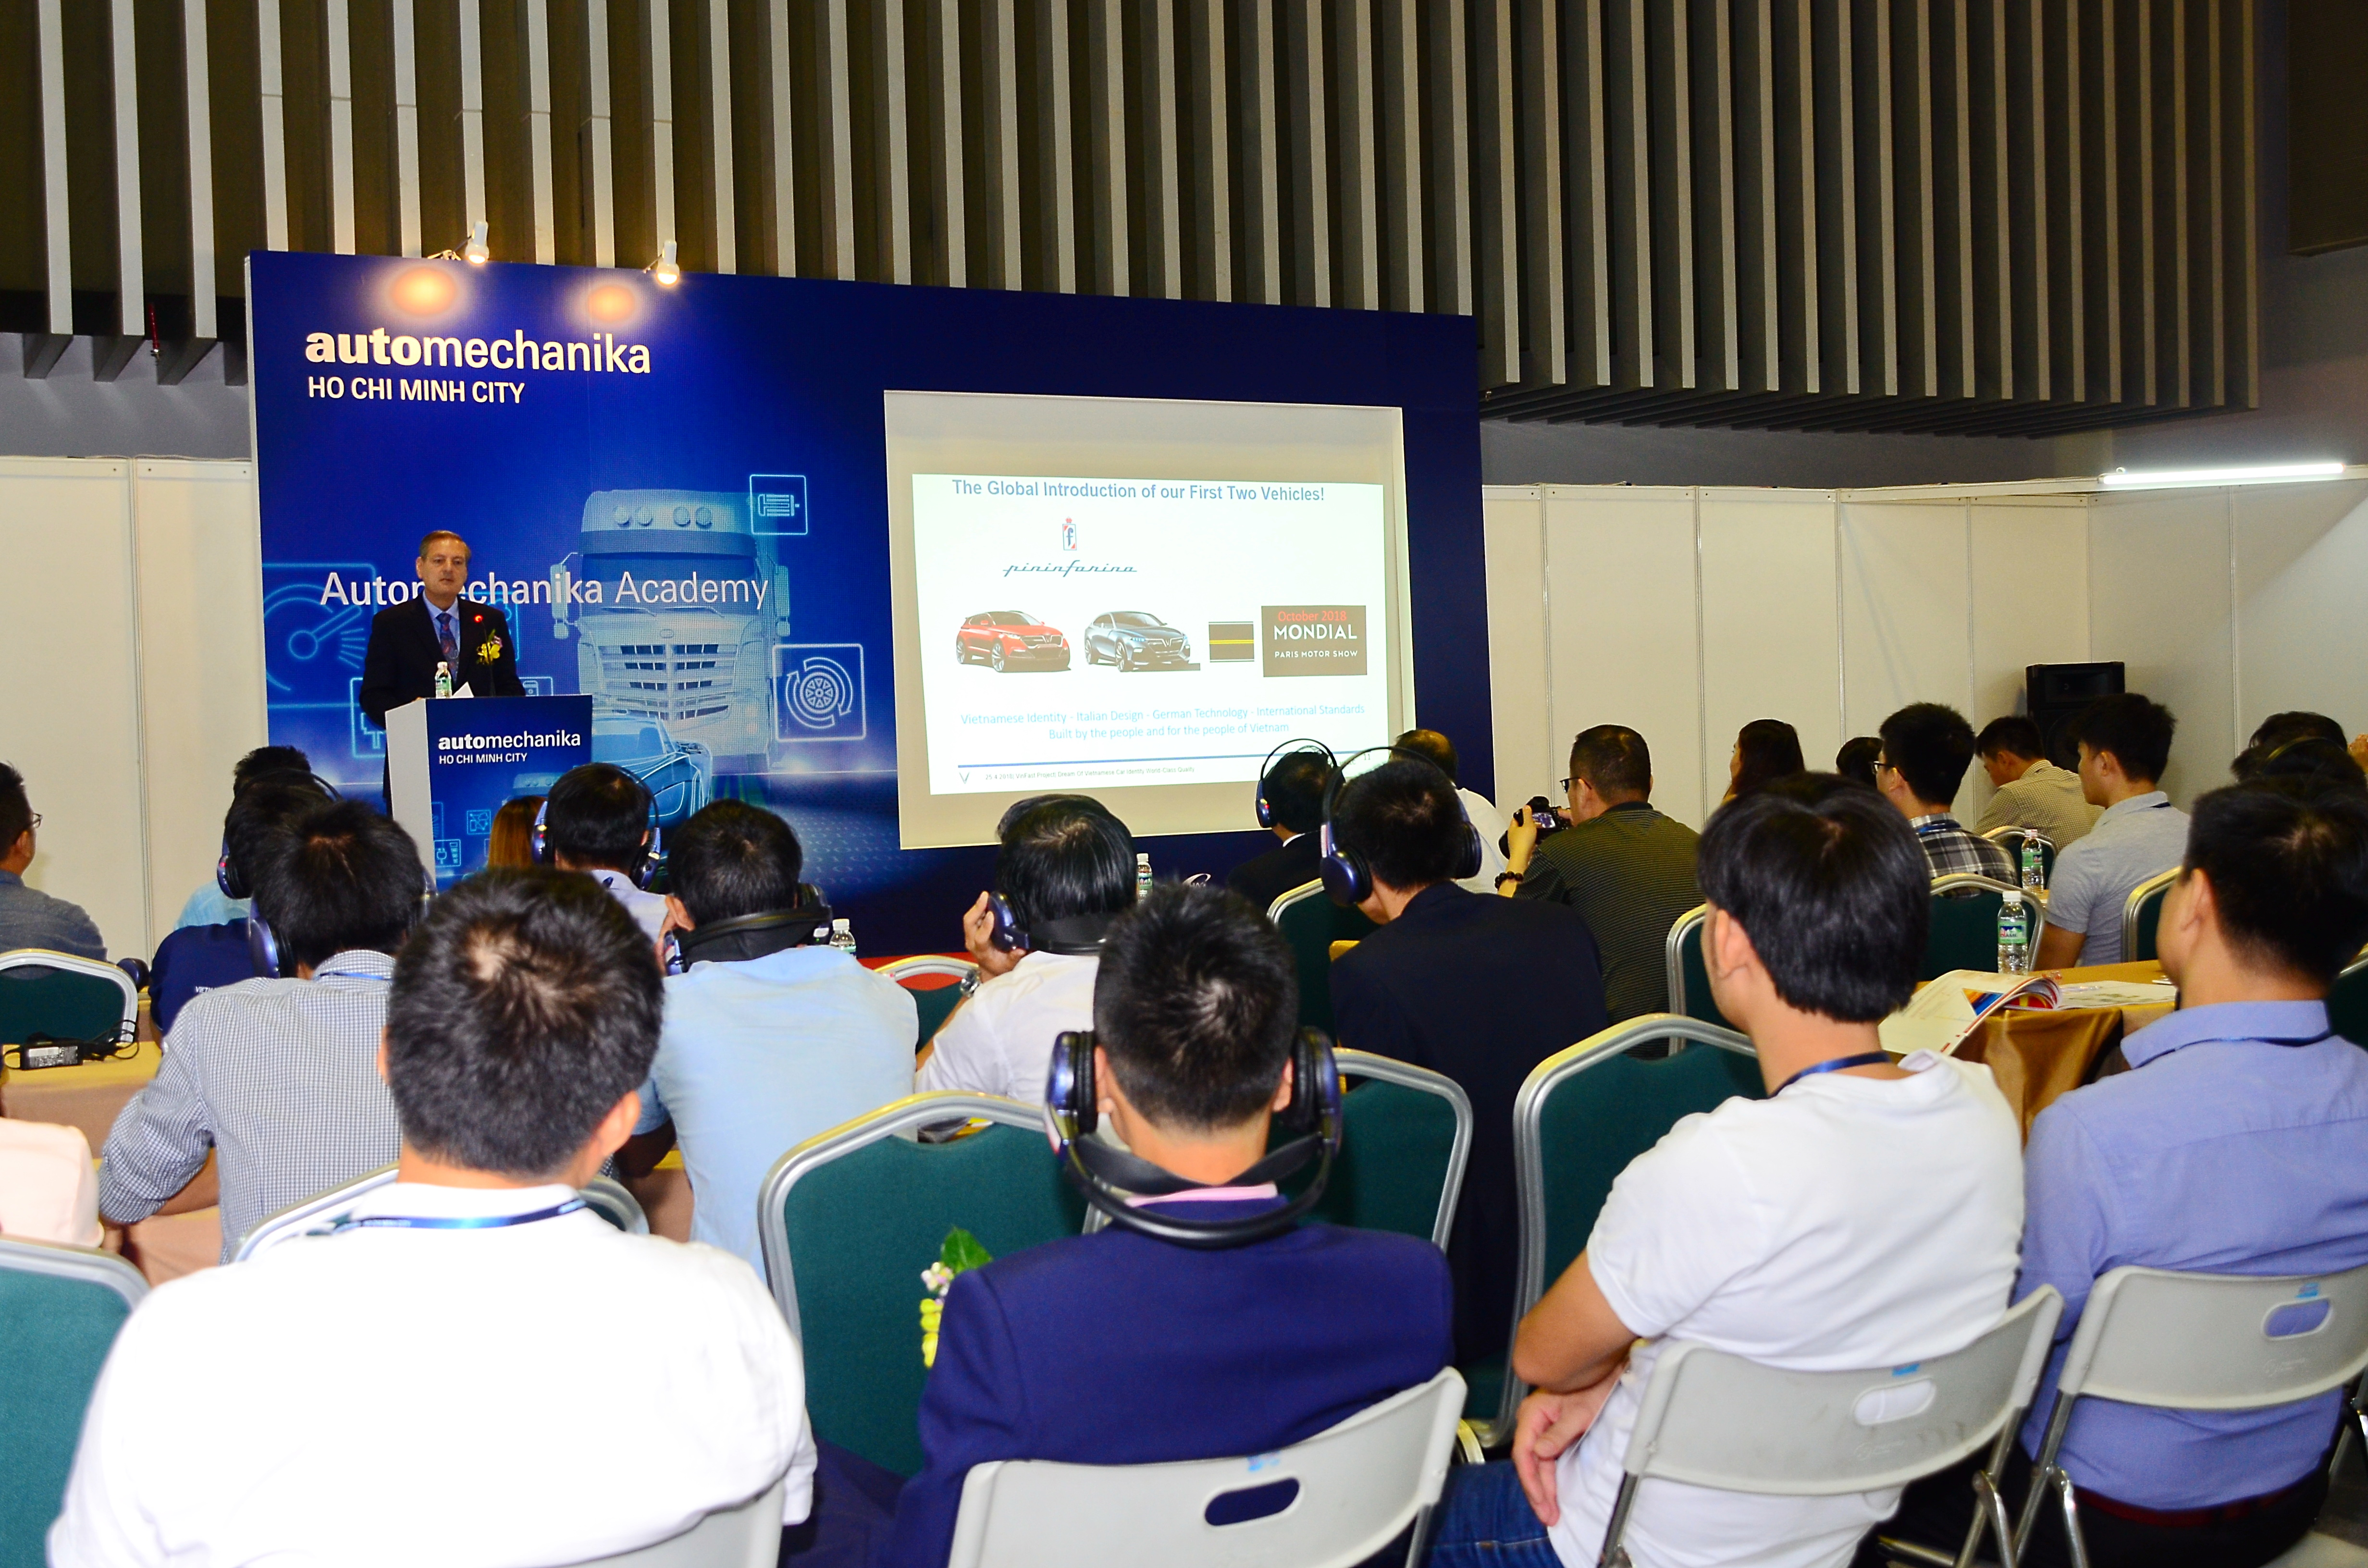 Automechanika Ho Chi Minh City 2019 replied to the local